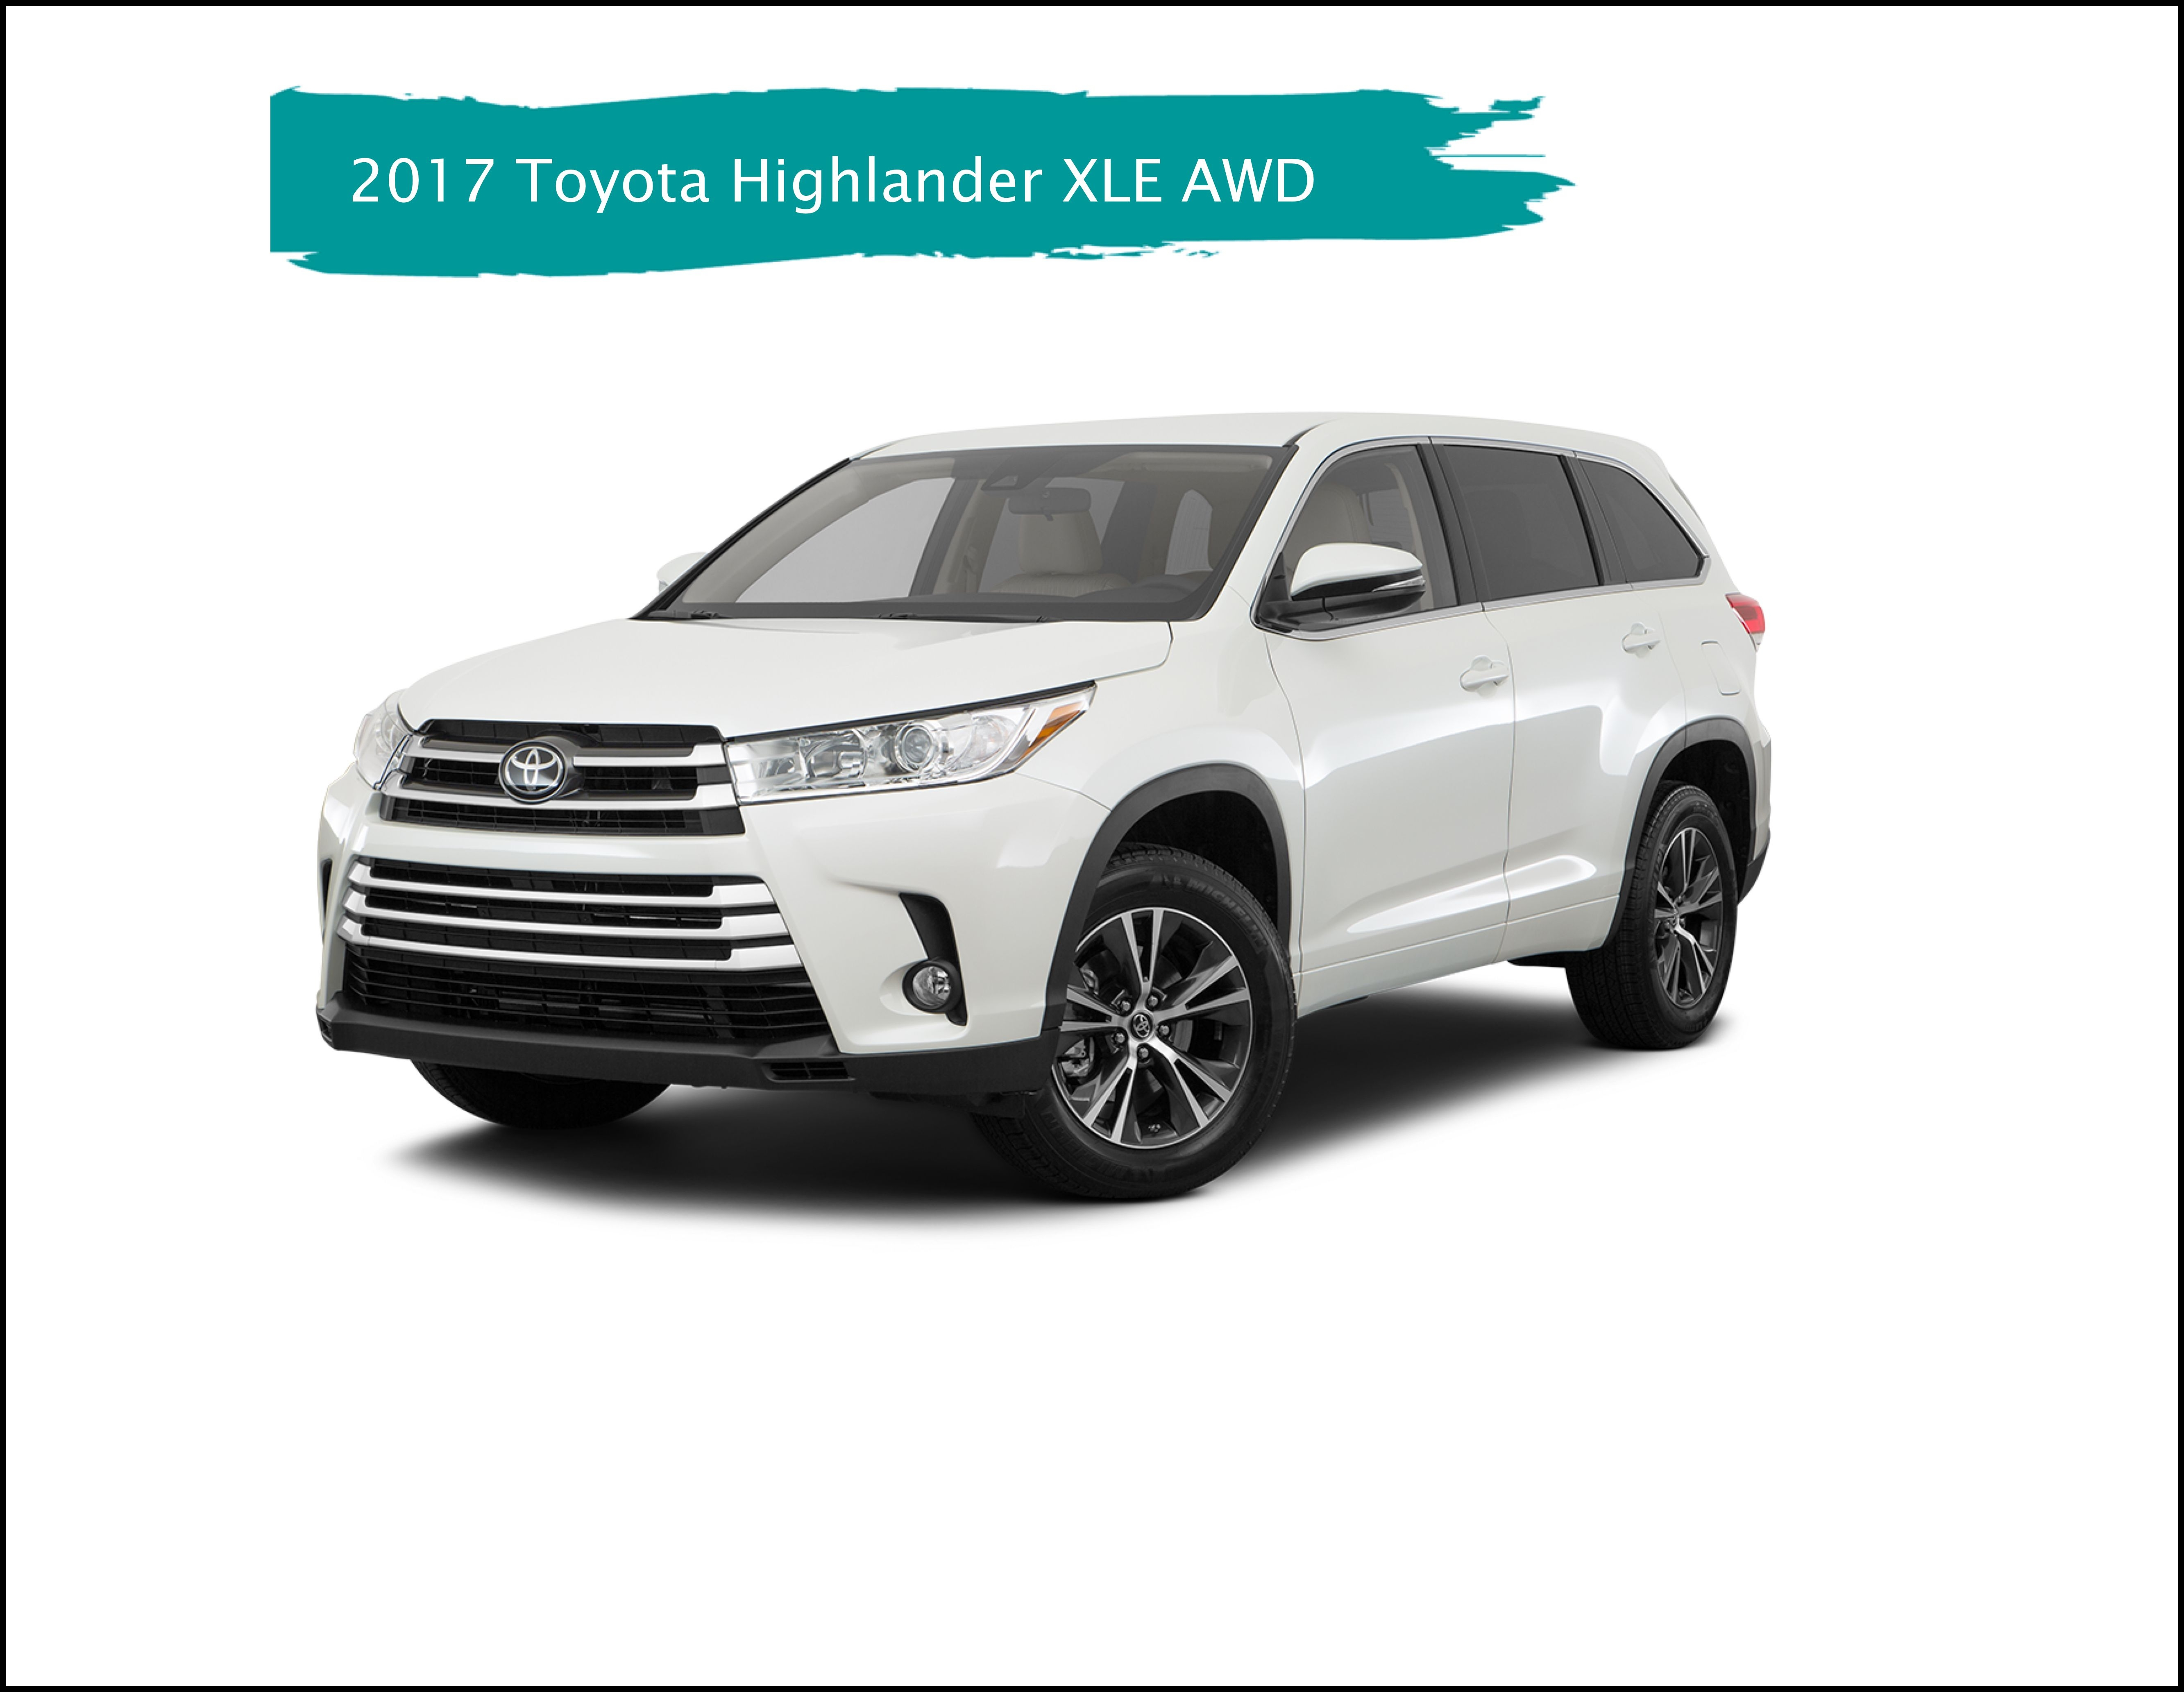 Top Lease A 2017 toyota Highlander Xle for $396 Month Nyc Taxes New Reviews